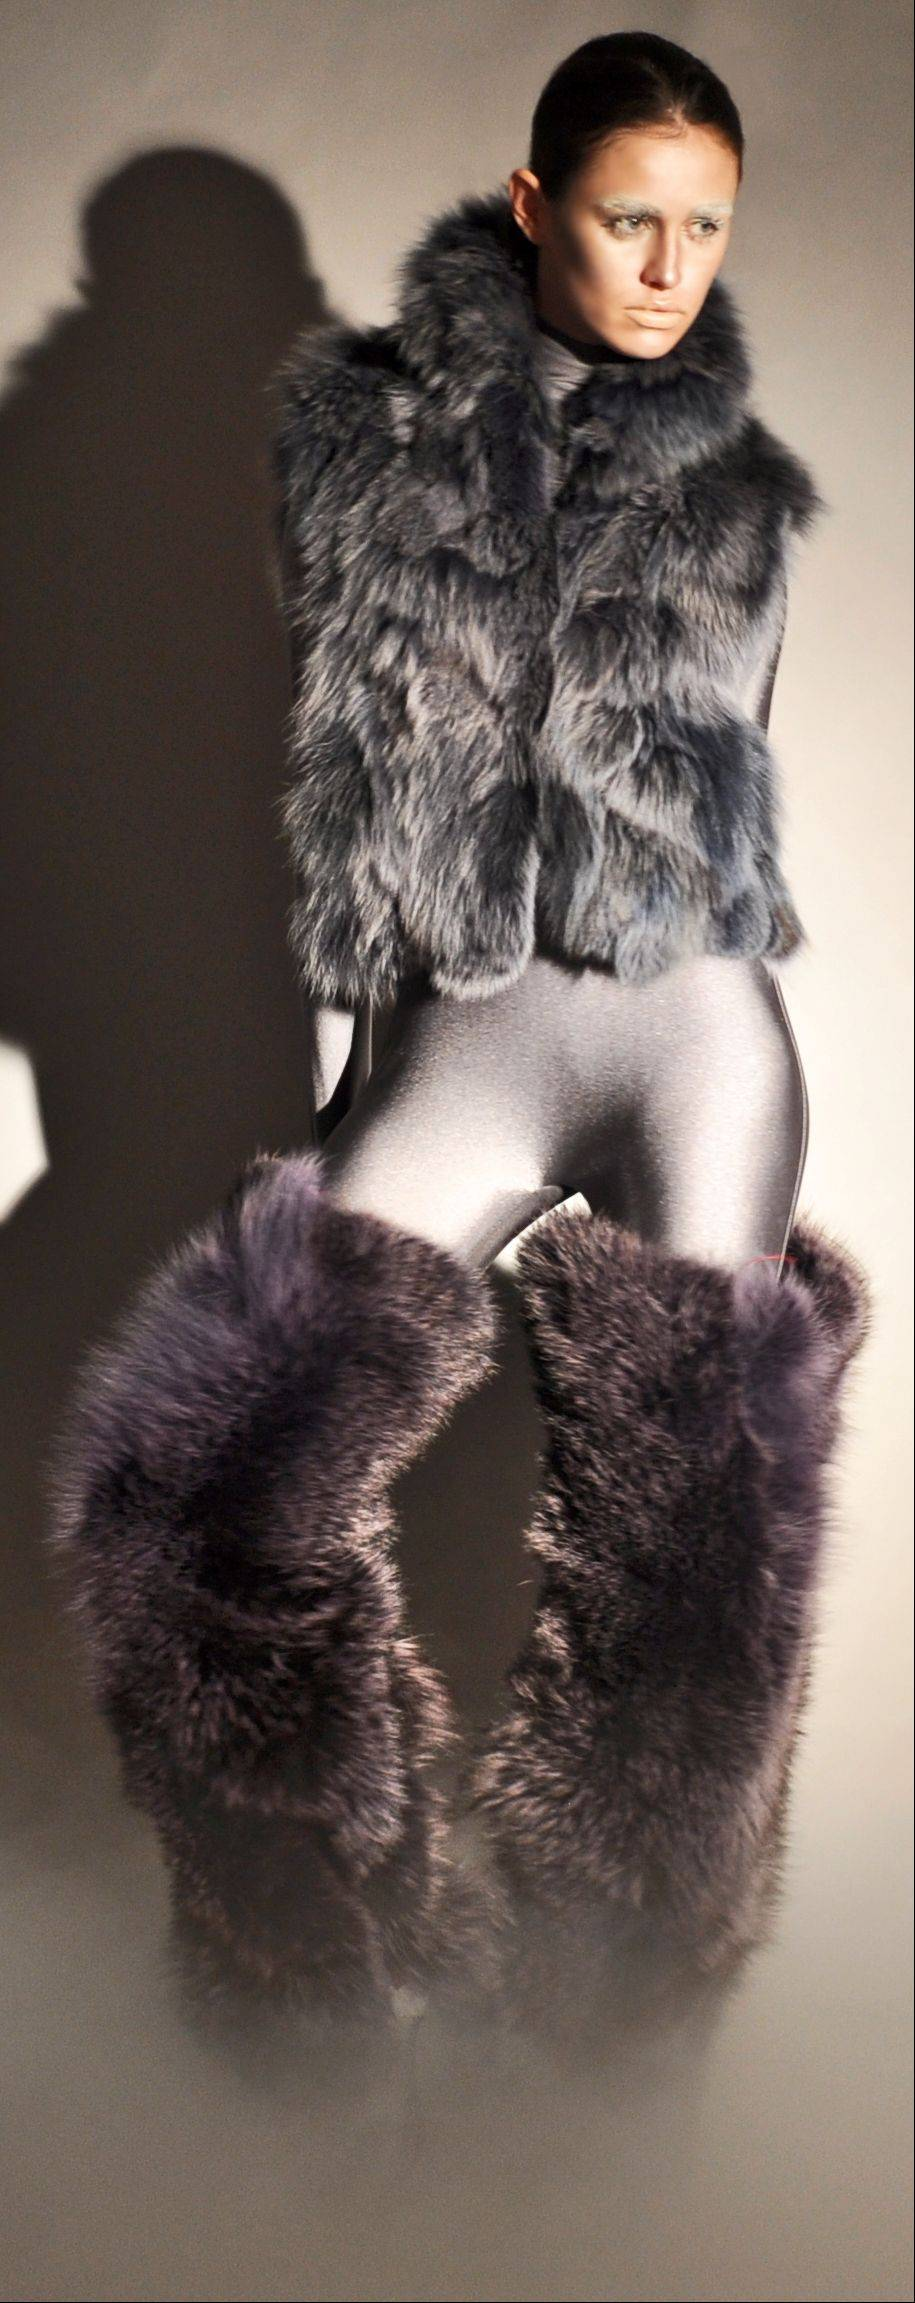 An indigo dyed fox vest and thigh-high purple coyote fur leg warmers, part of Adrienne Landau's fall 2011 collection.